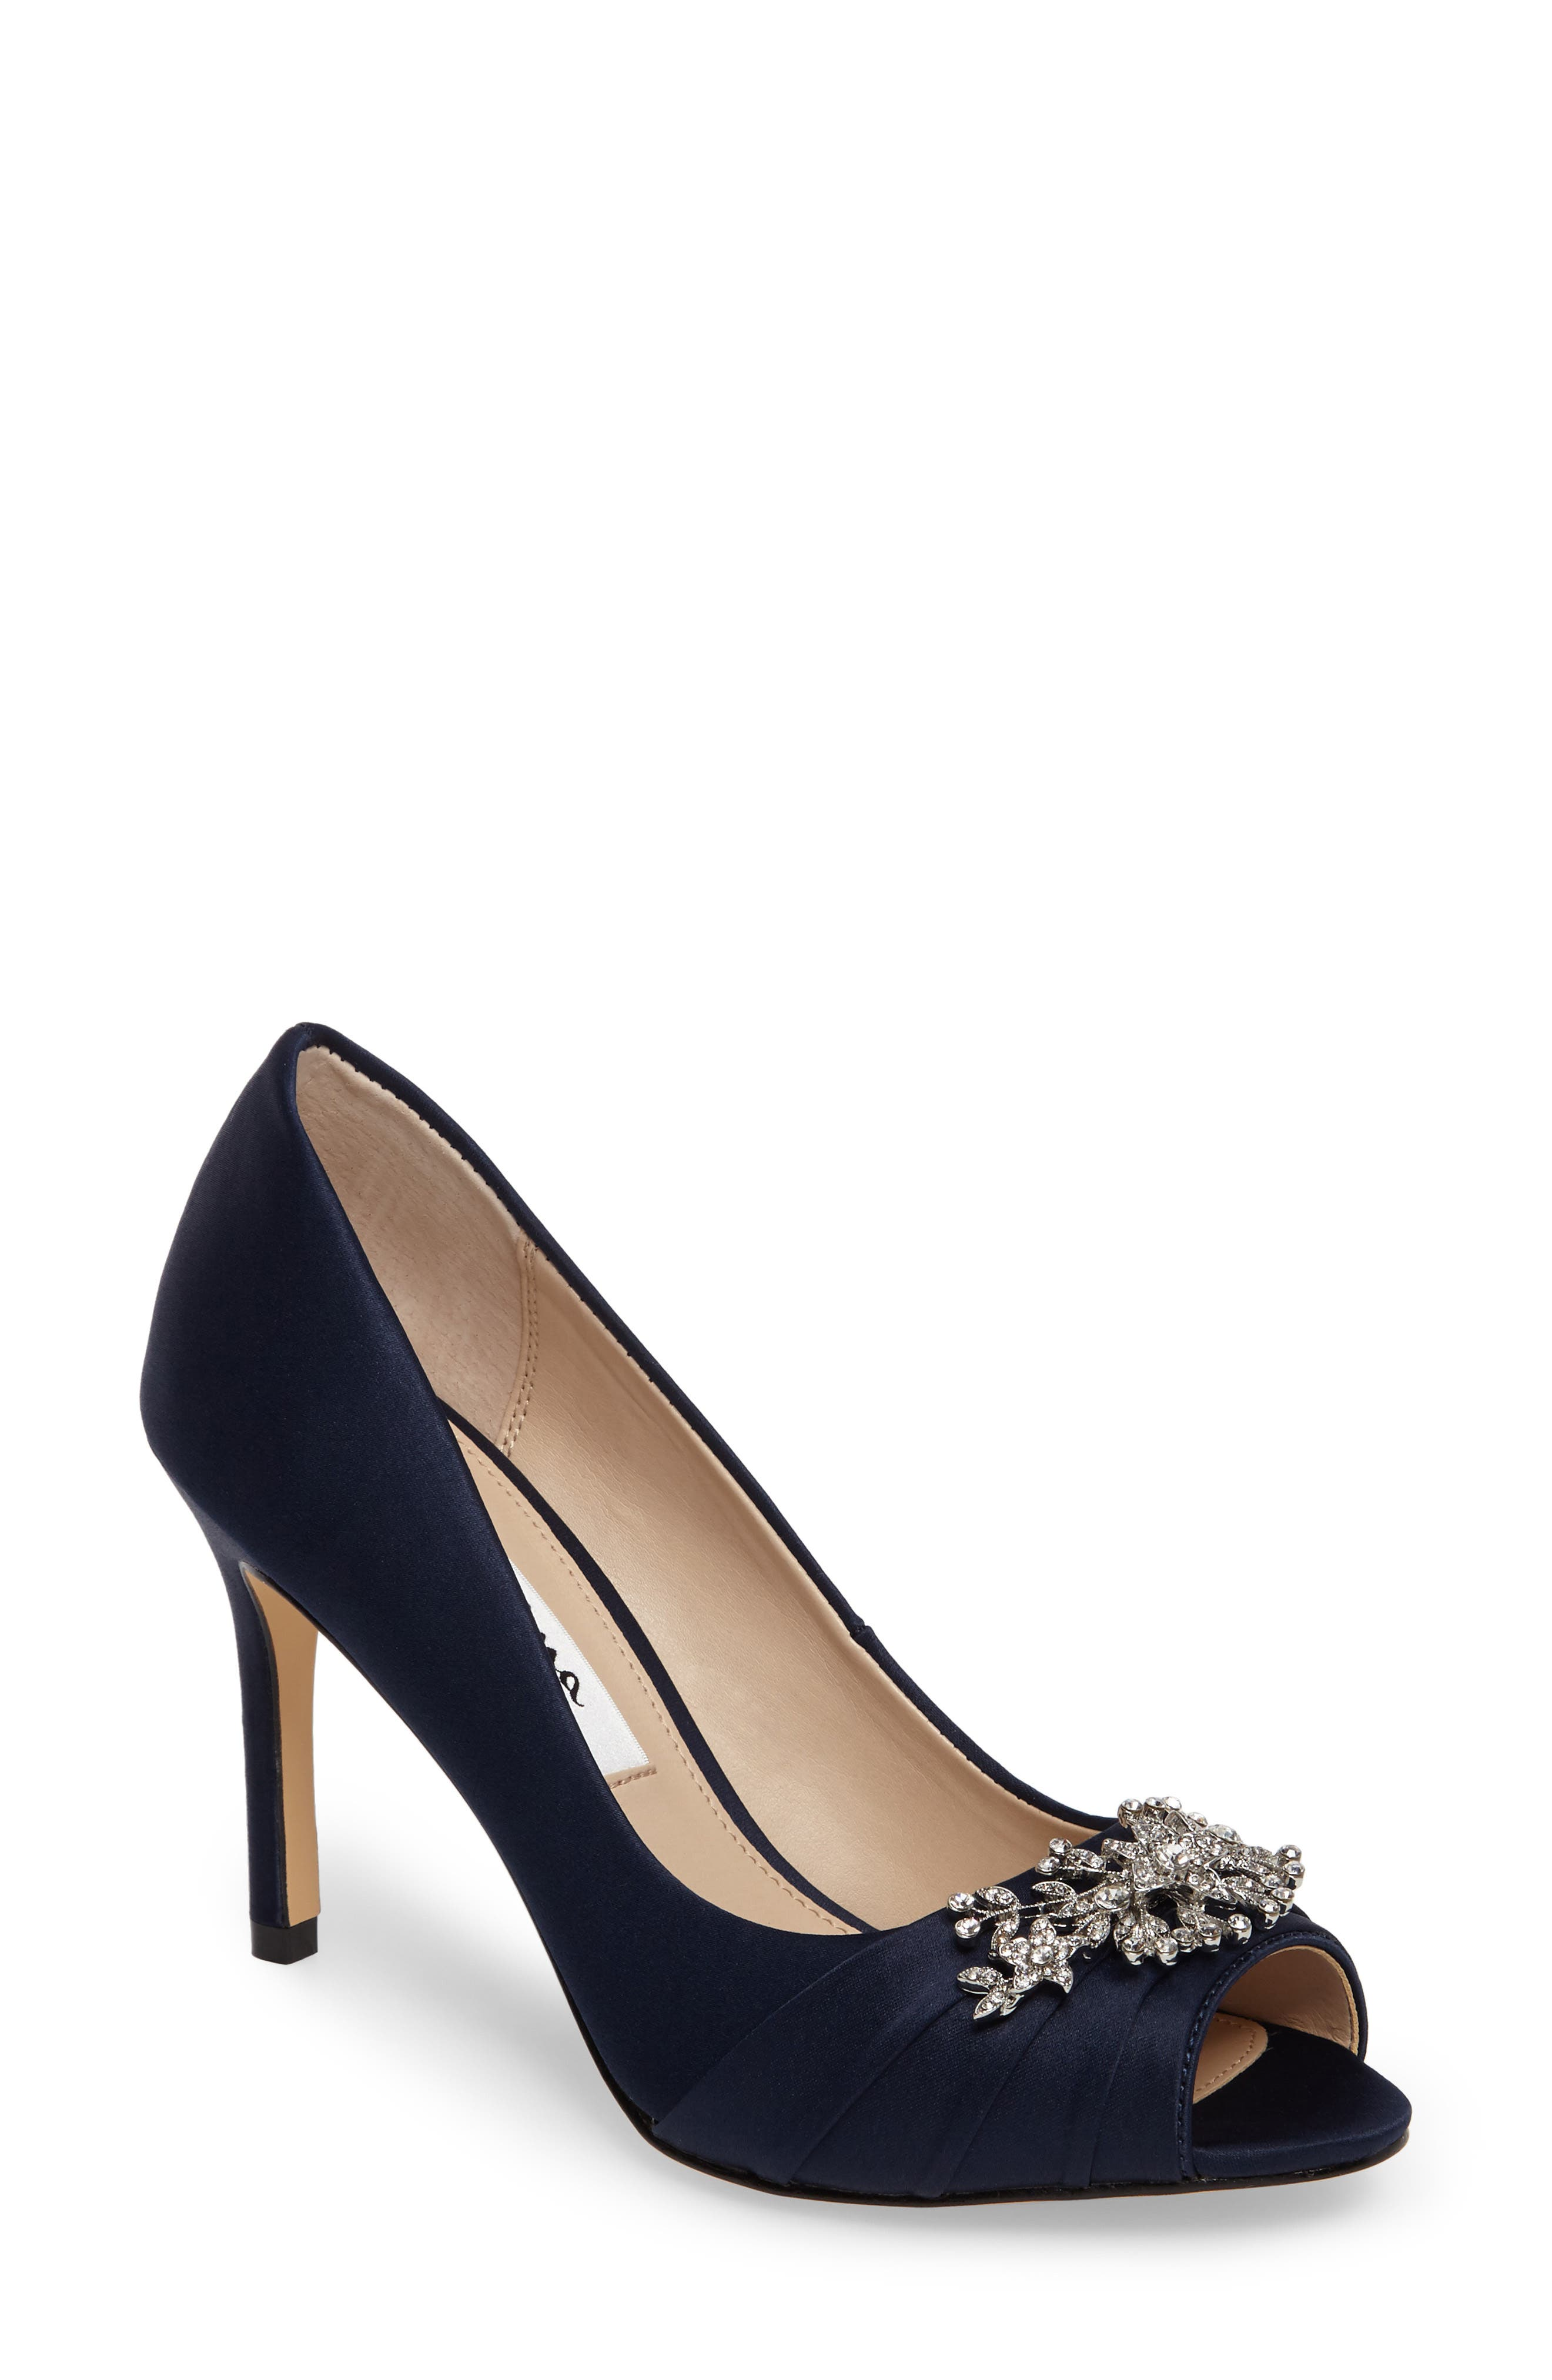 Alternate Image 1 Selected - Nina Rumina Embellished Peep Toe Pump (Women)